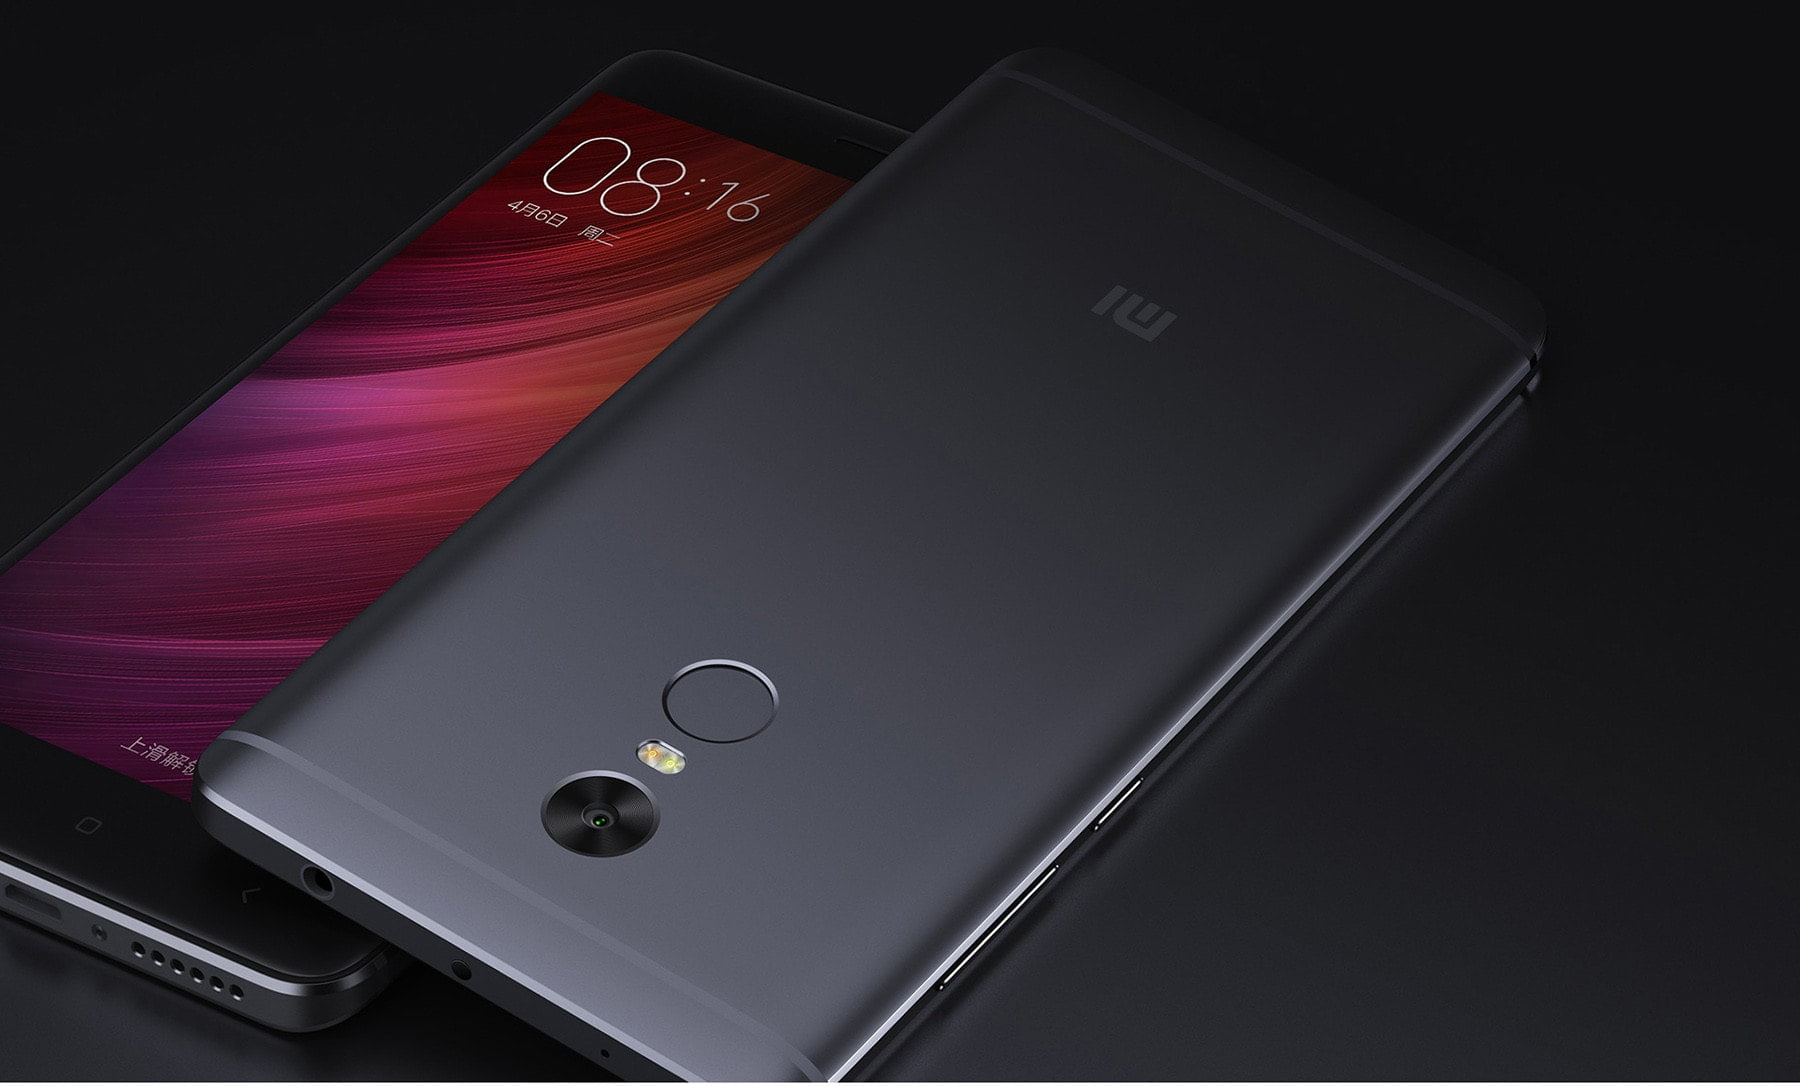 Smartphone of The Year 2017 - Xiaomi Redmi Note 4 | All You Need To Know